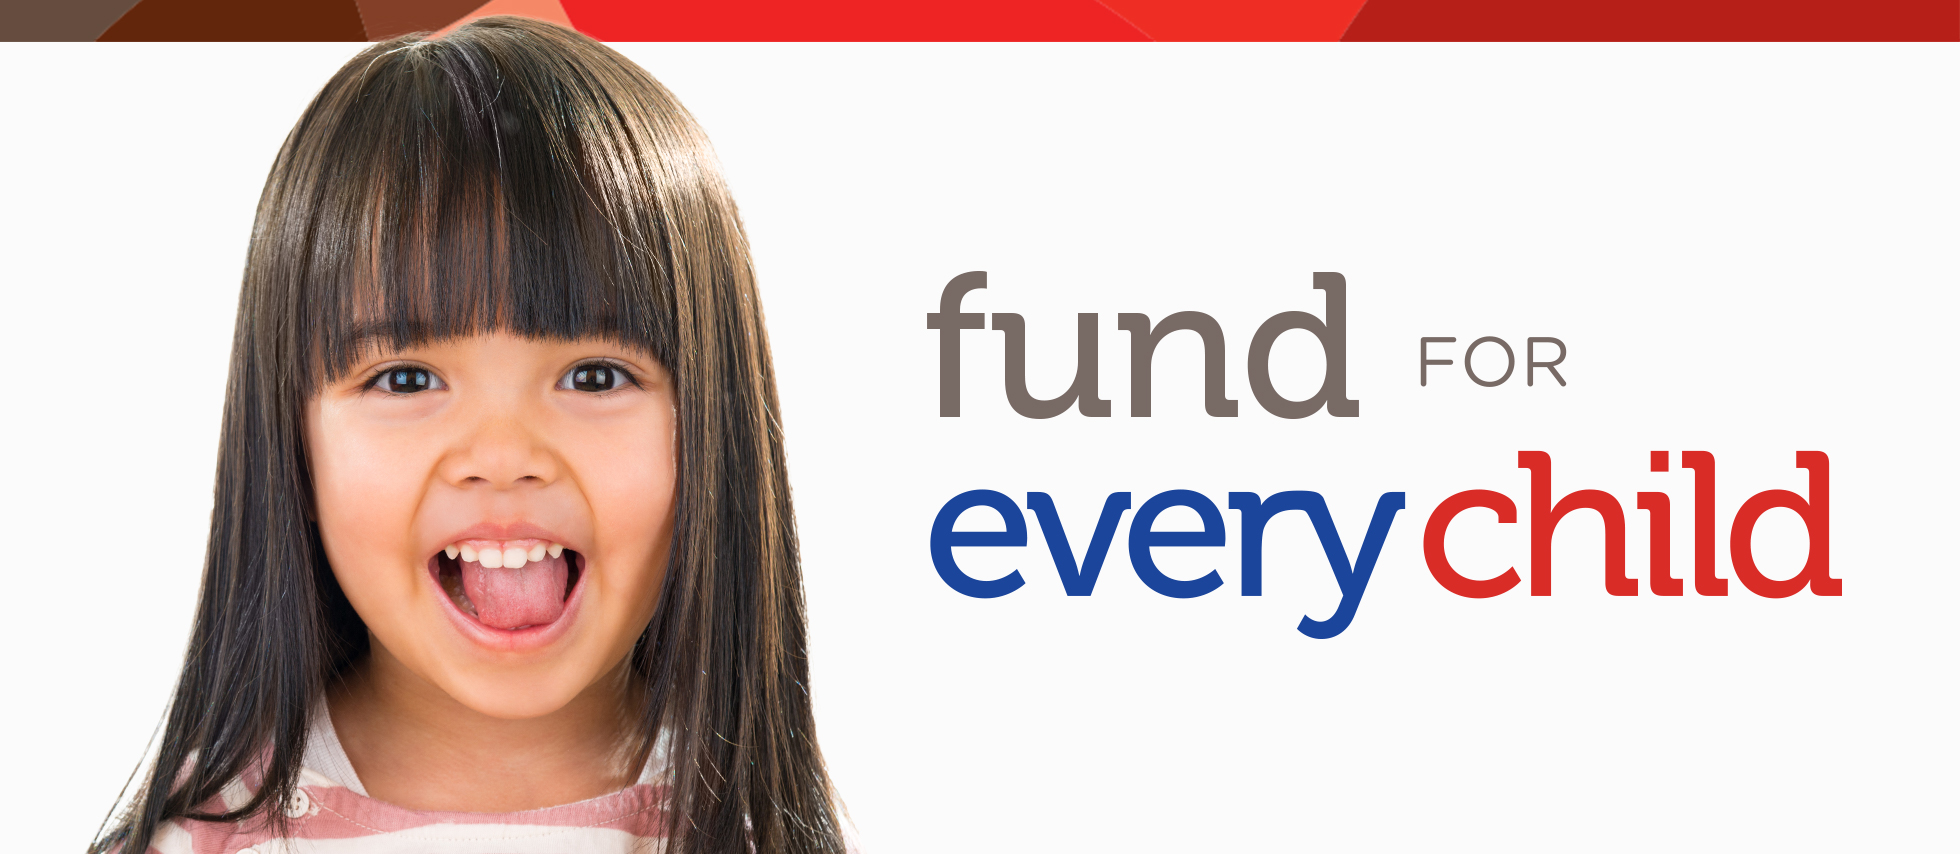 Fund for Every Child header